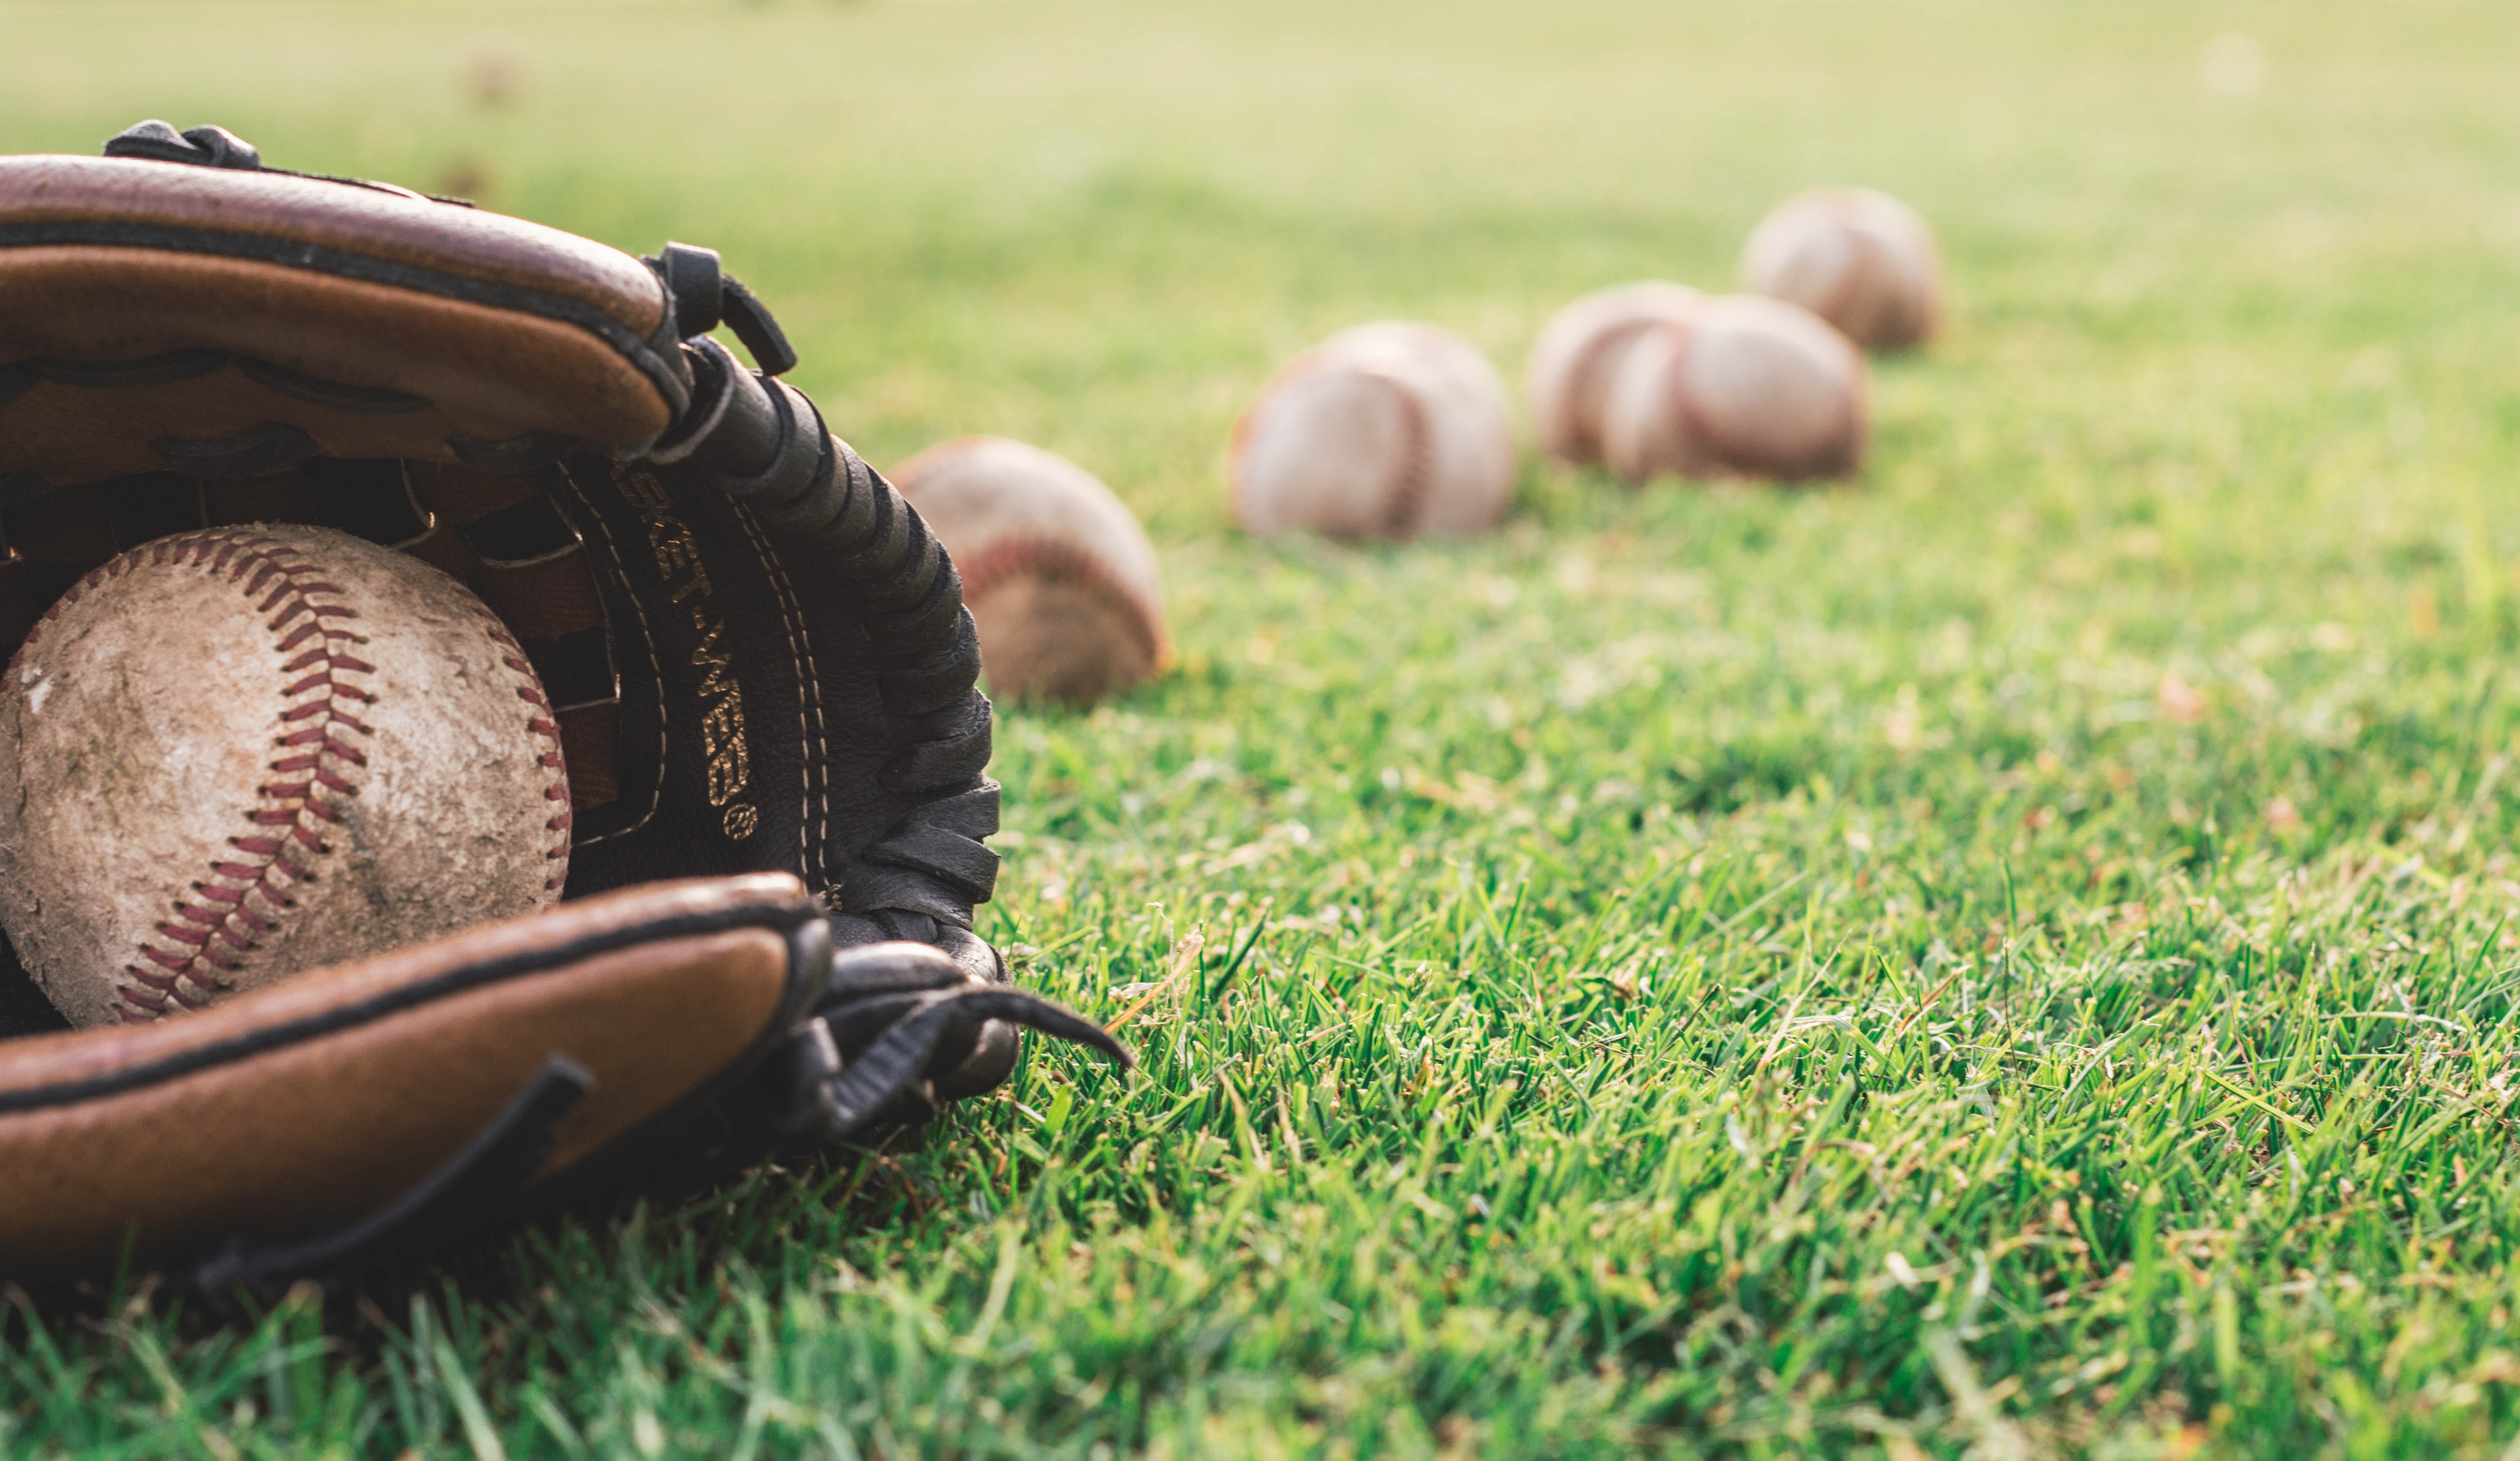 MLB Suing Insurance Carriers Over Loss of Income